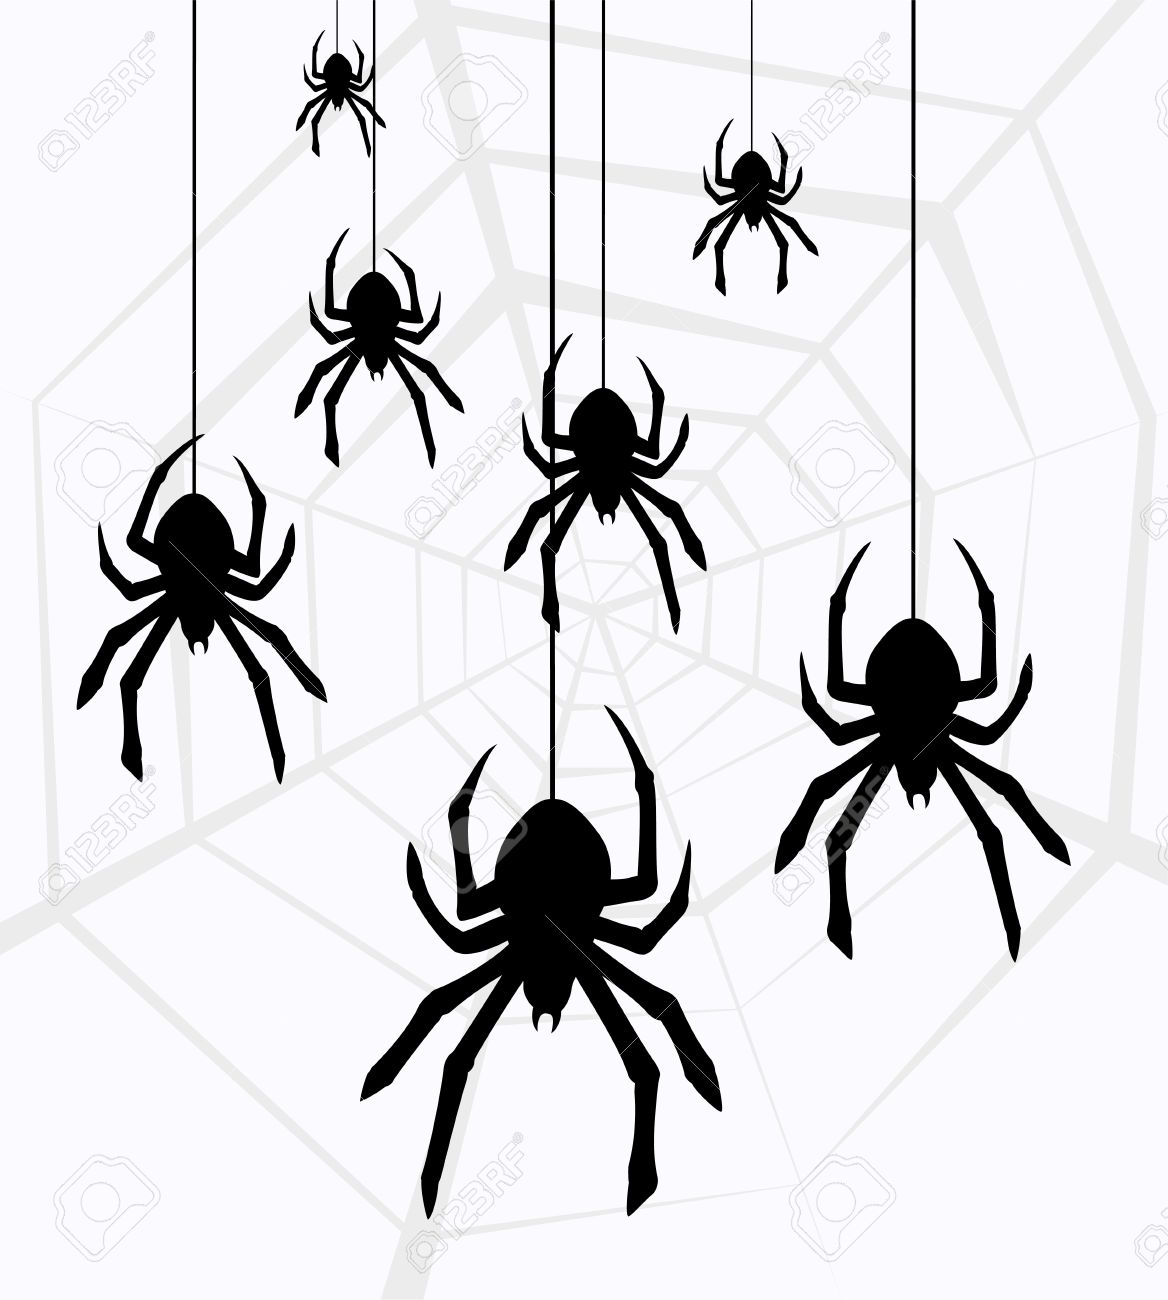 1168x1300 Spider Web Clipart Hanging